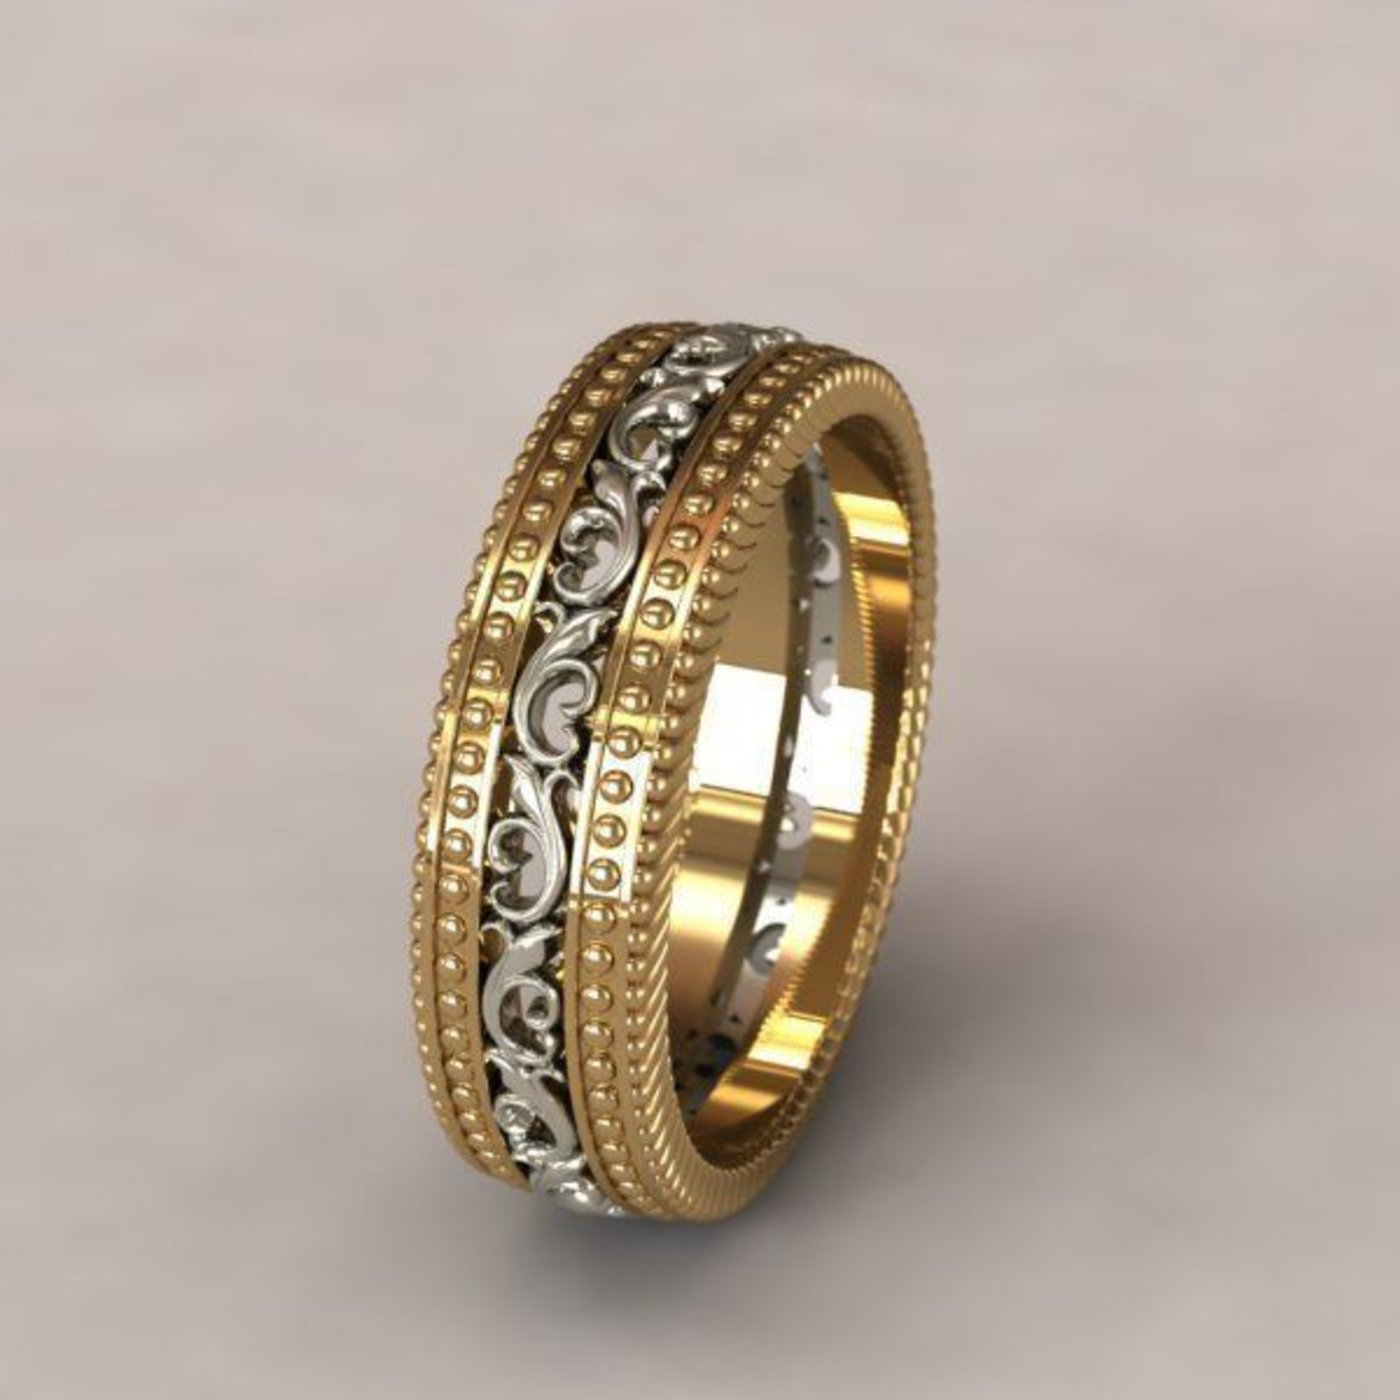 3d model of wedding rings